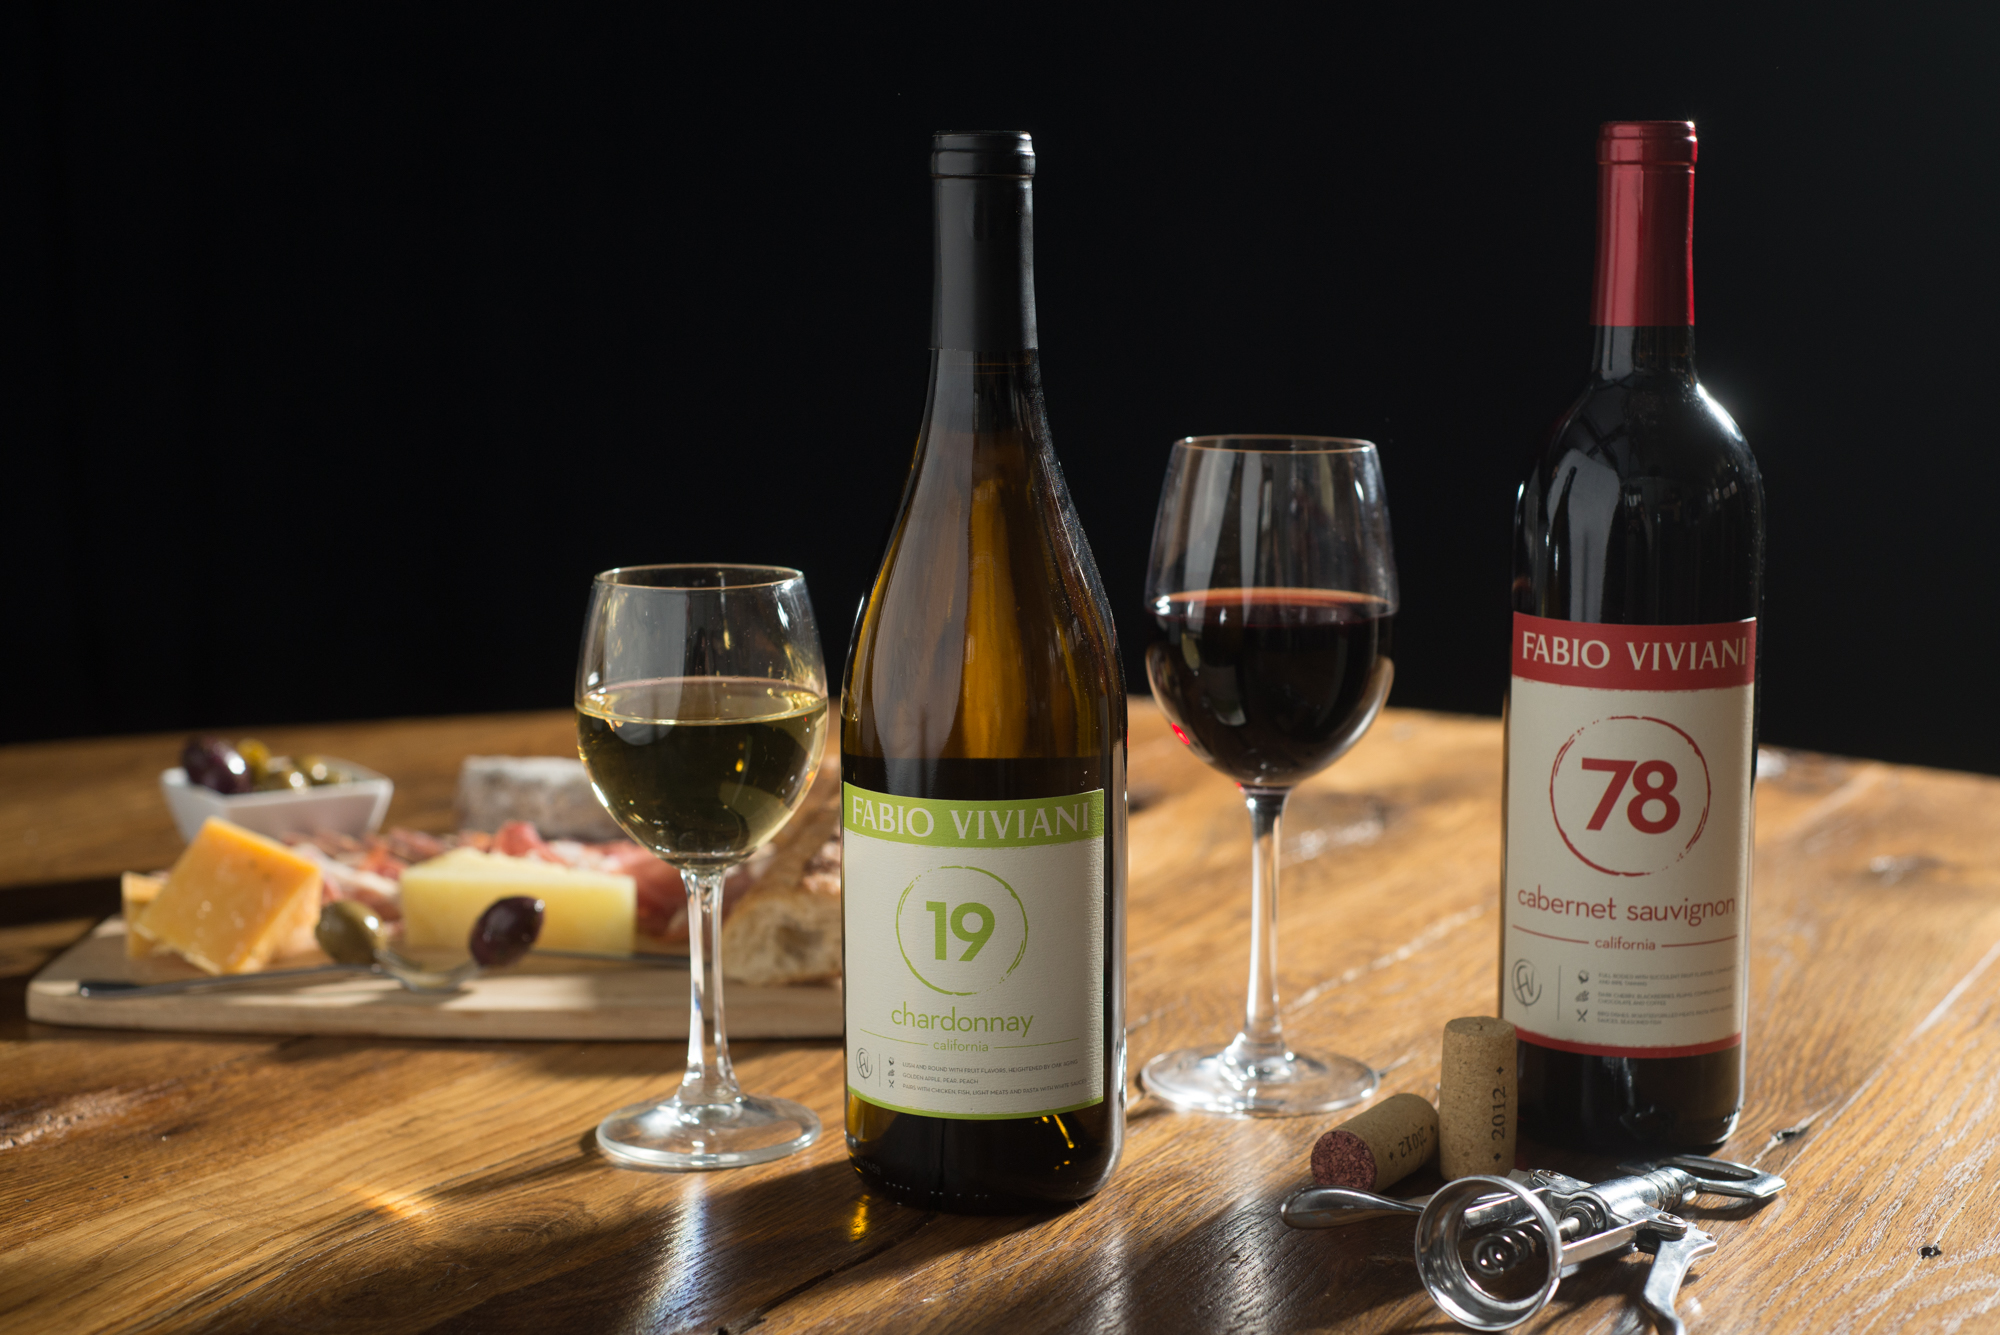 A New Wine Collection from Fabio Viviani!